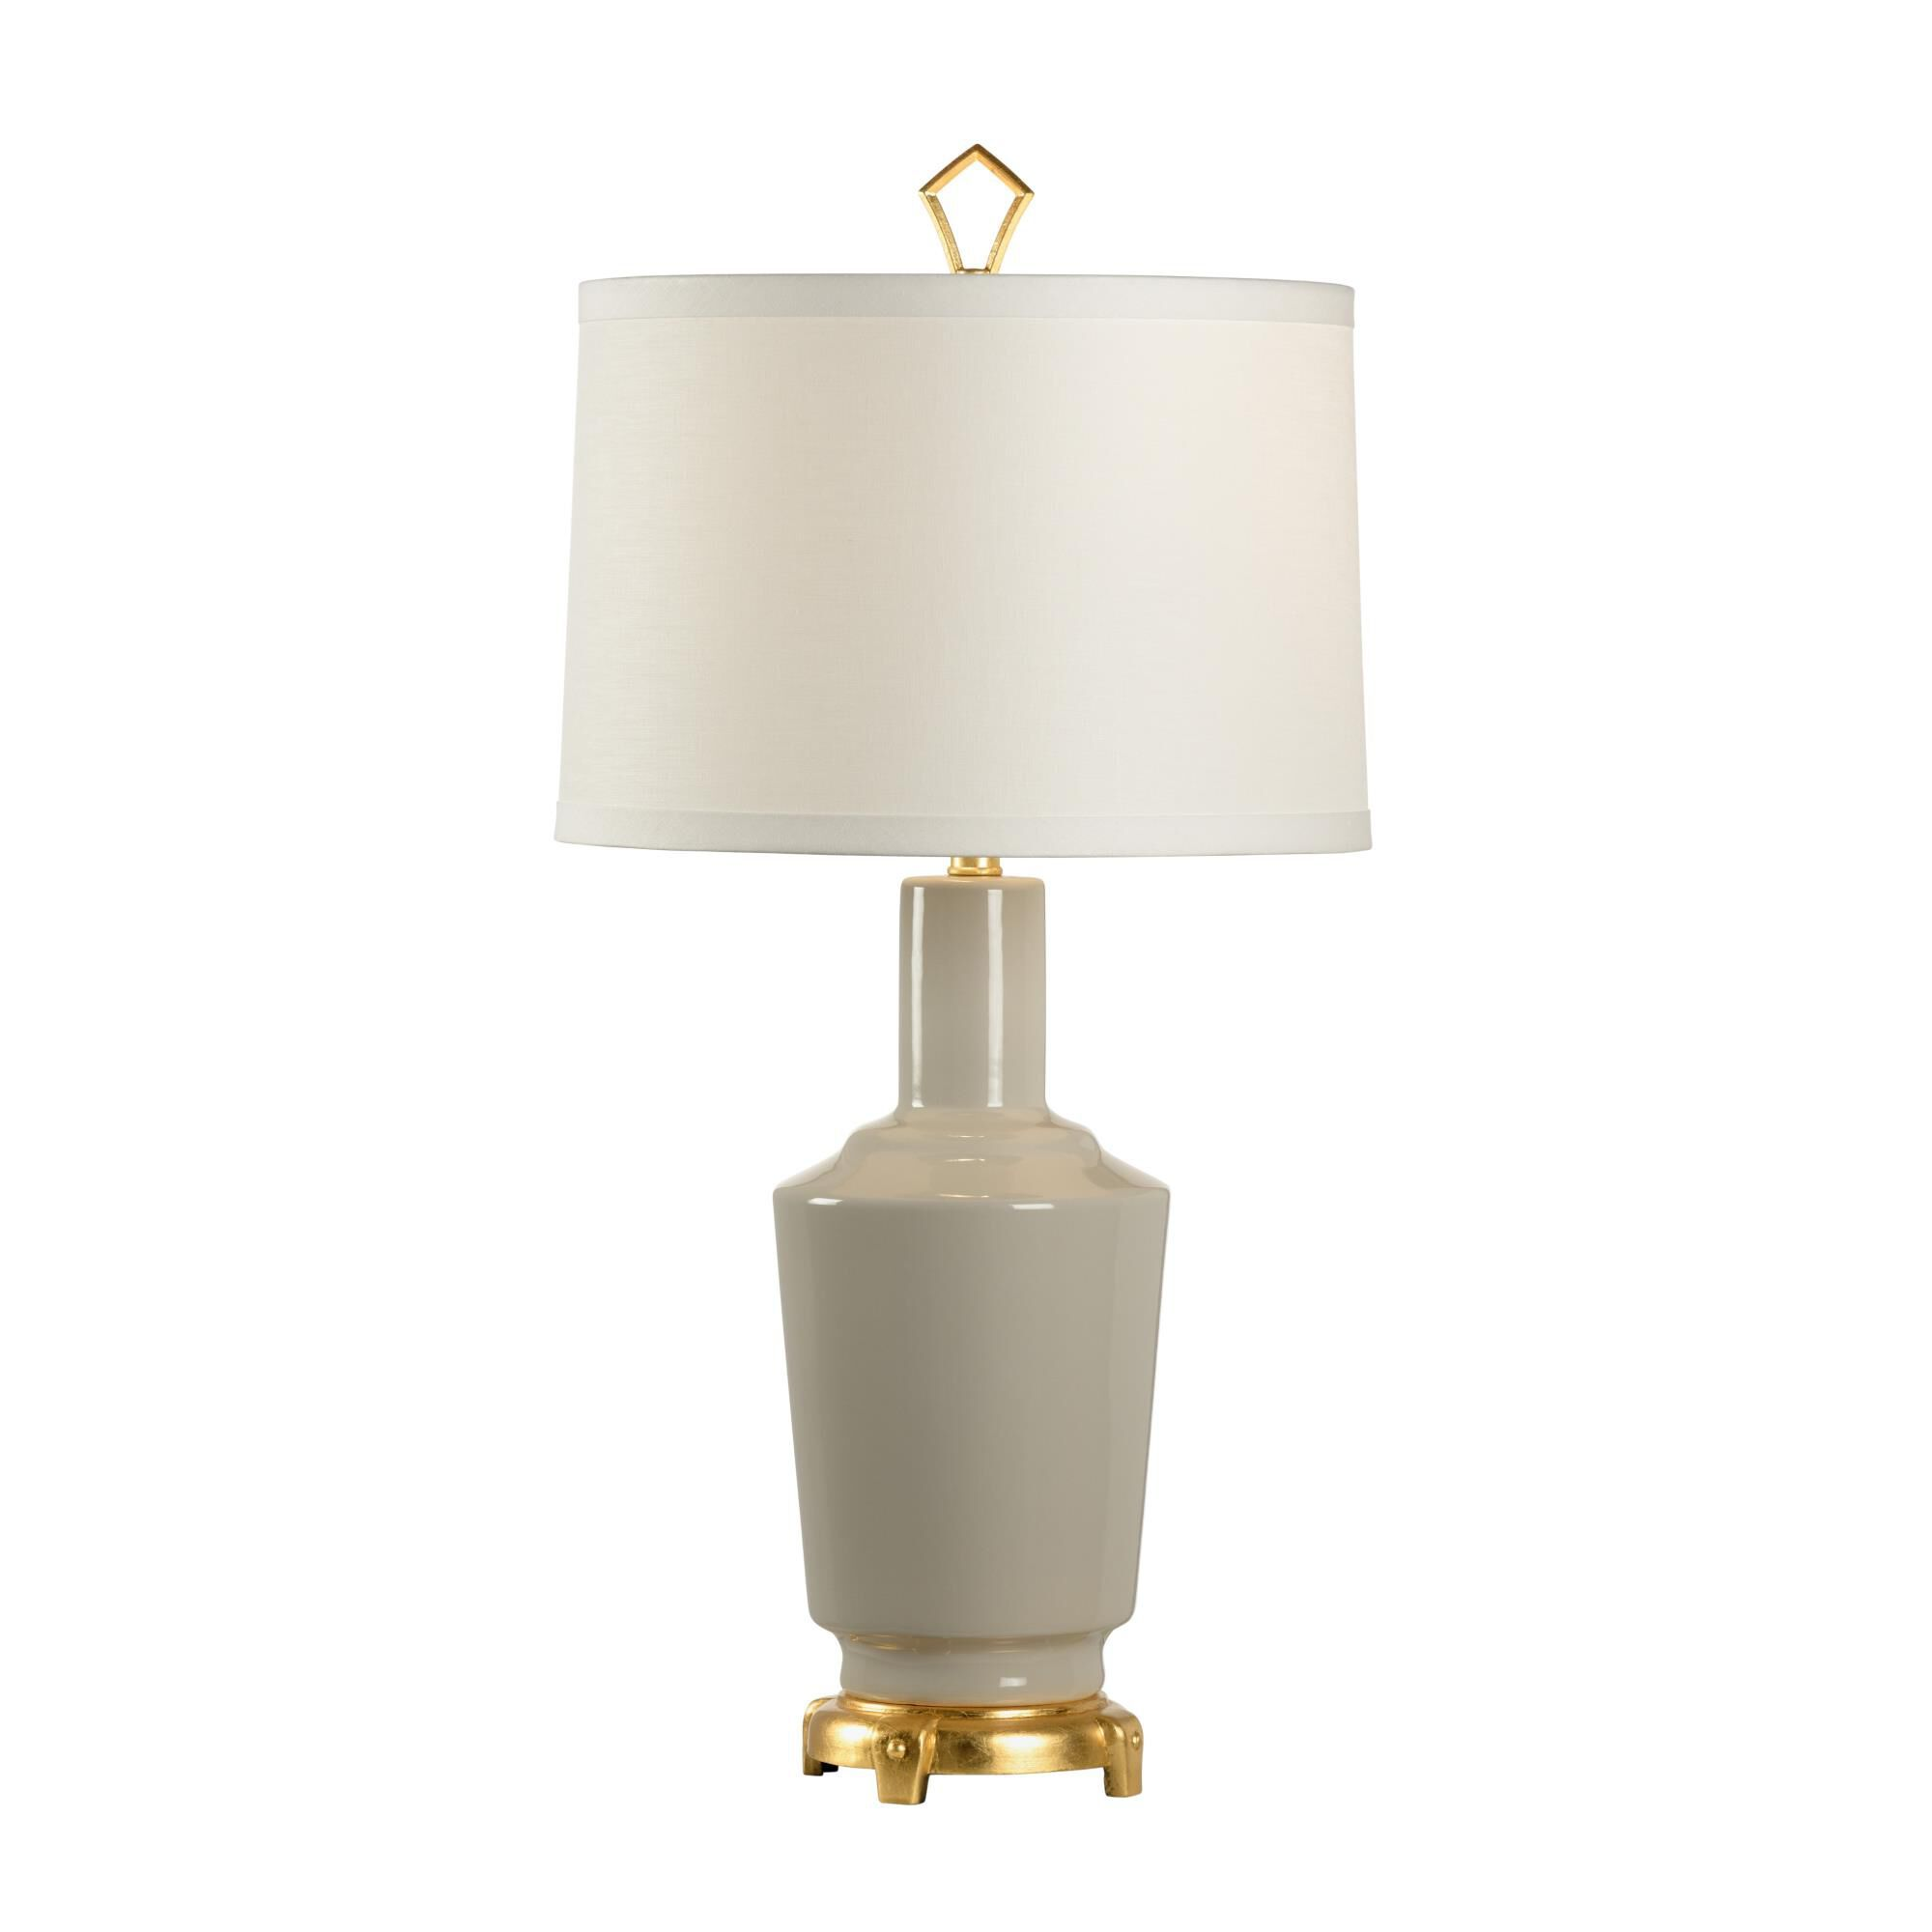 Emma 32 Inch Table Lamp Capitol Lighting In 2021 Lamp Table Lamp Light Table